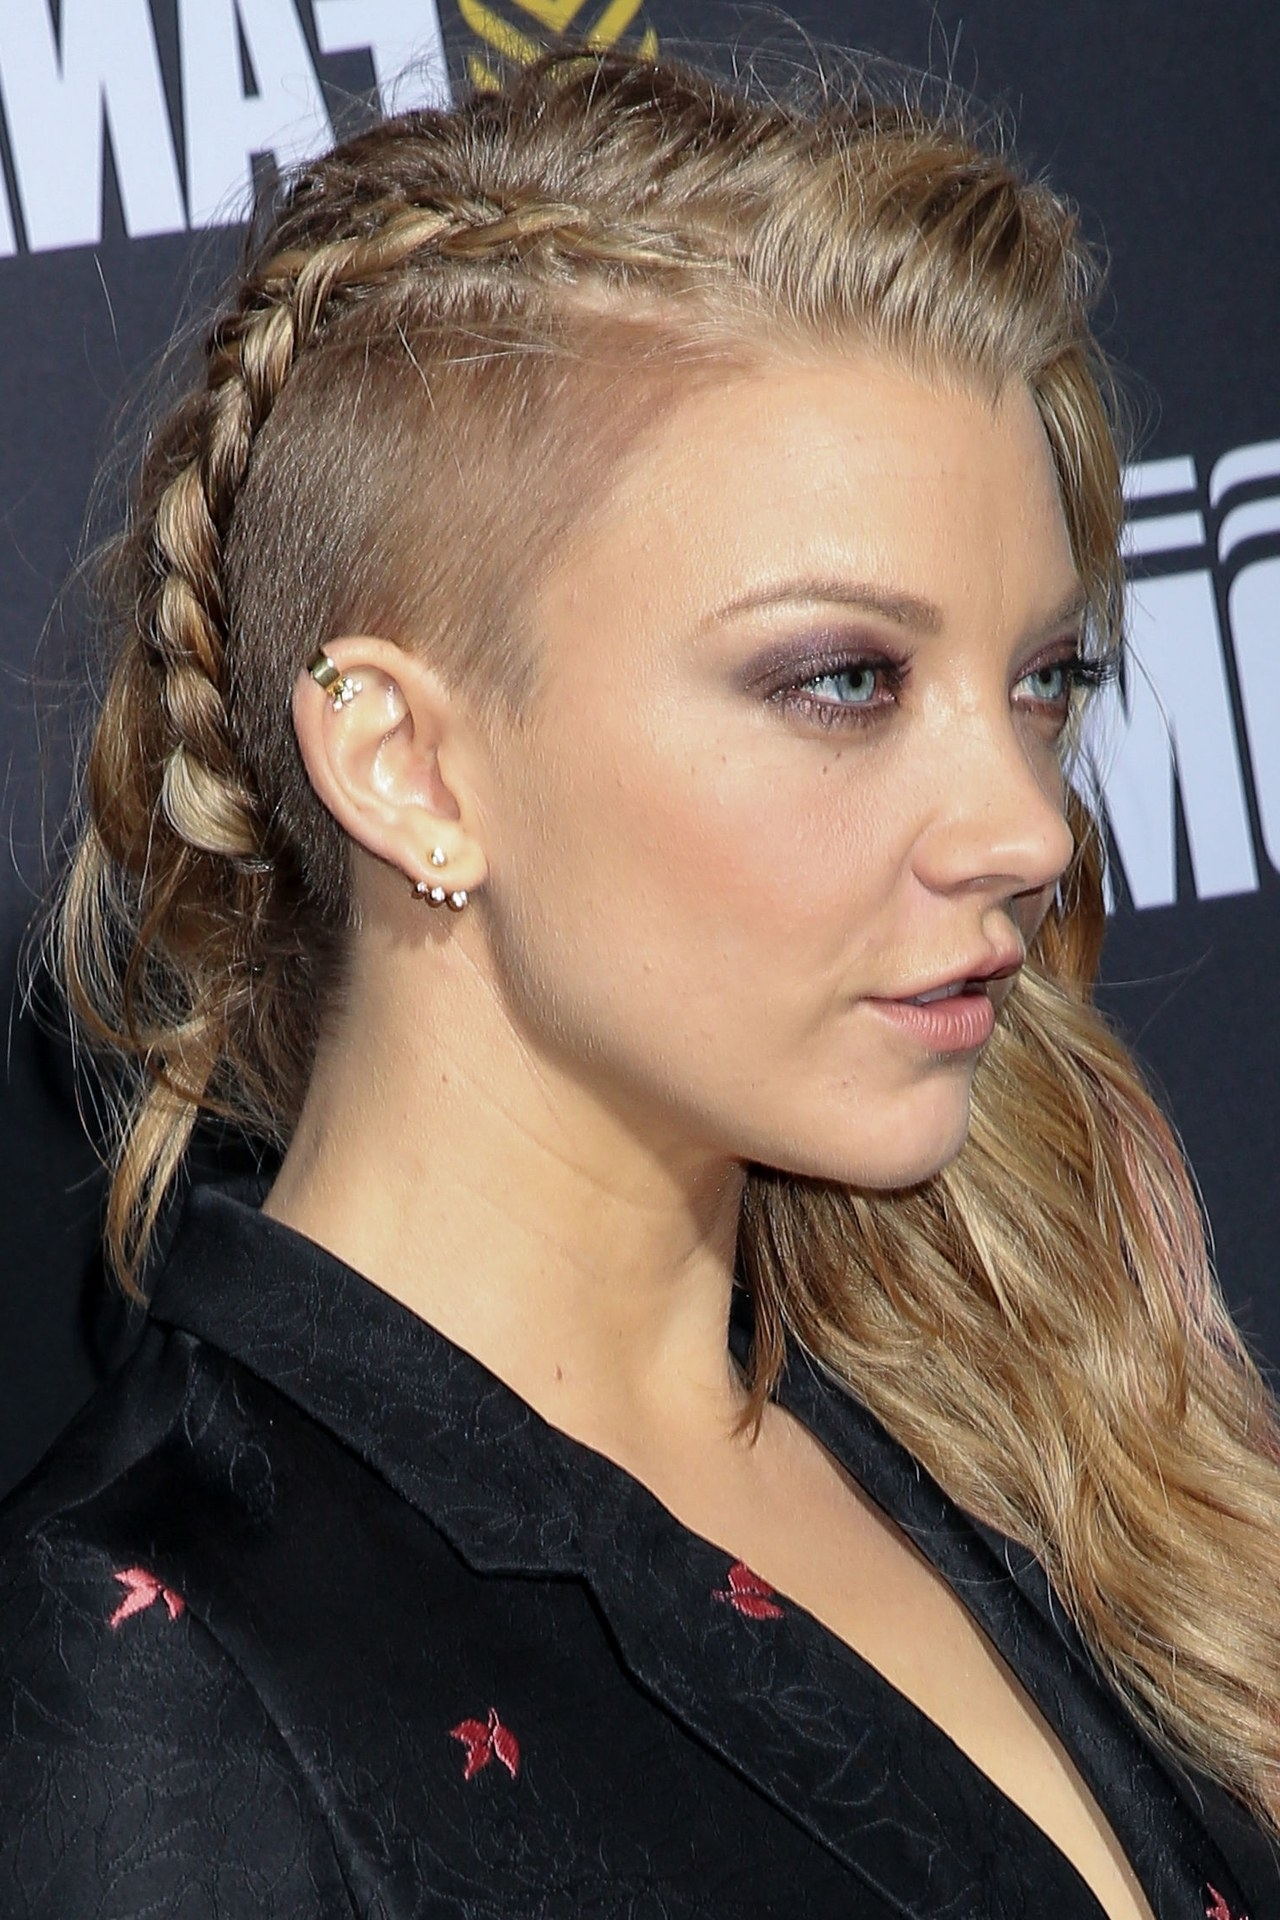 Natalie Dormer Wears A Fierce Braid Comic Con's Mtvu Fandom Awards Within Fashionable Fiercely Braided Hairstyles (View 12 of 15)